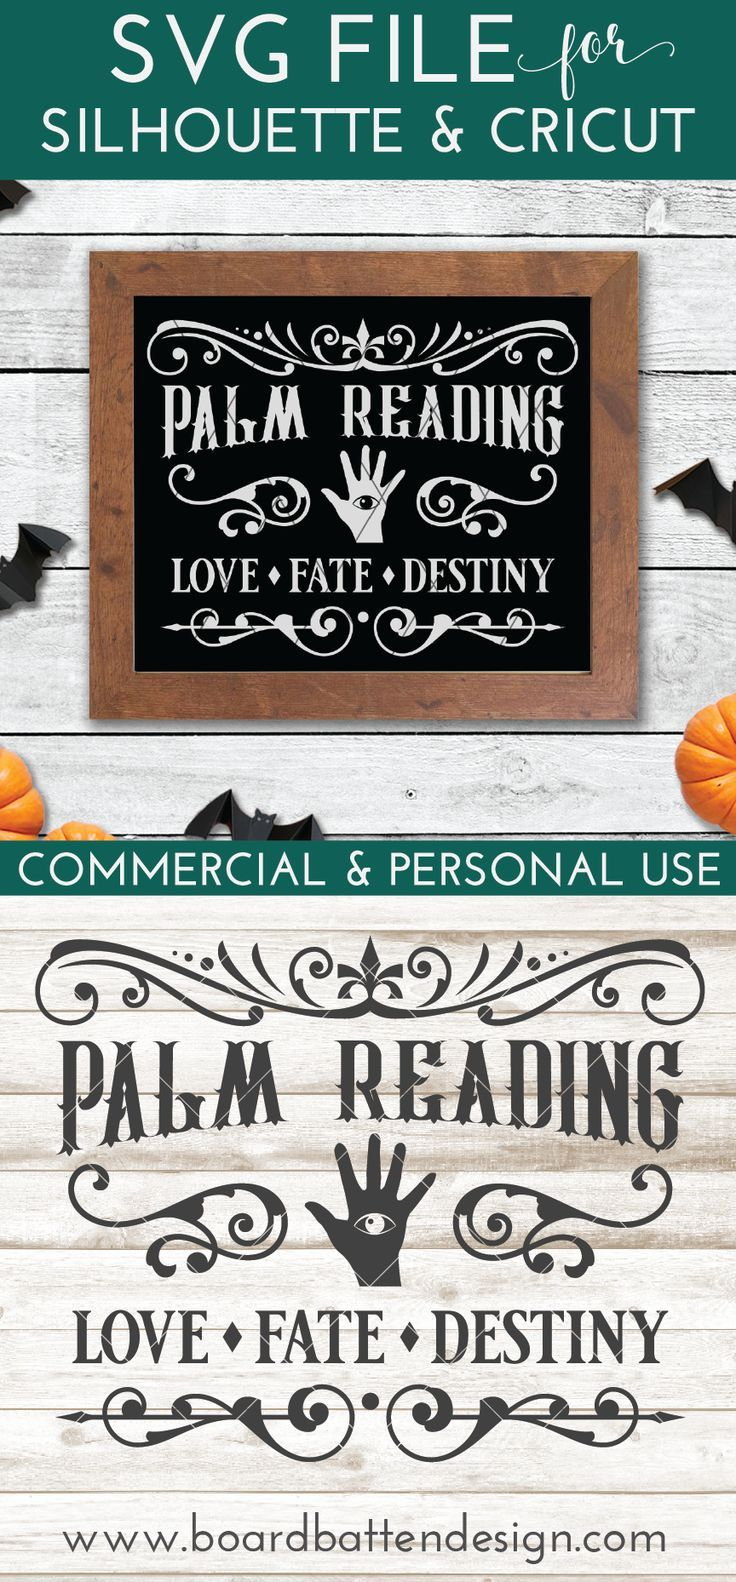 Vintage Palm Reading Sign SVG File for Halloween in 2020